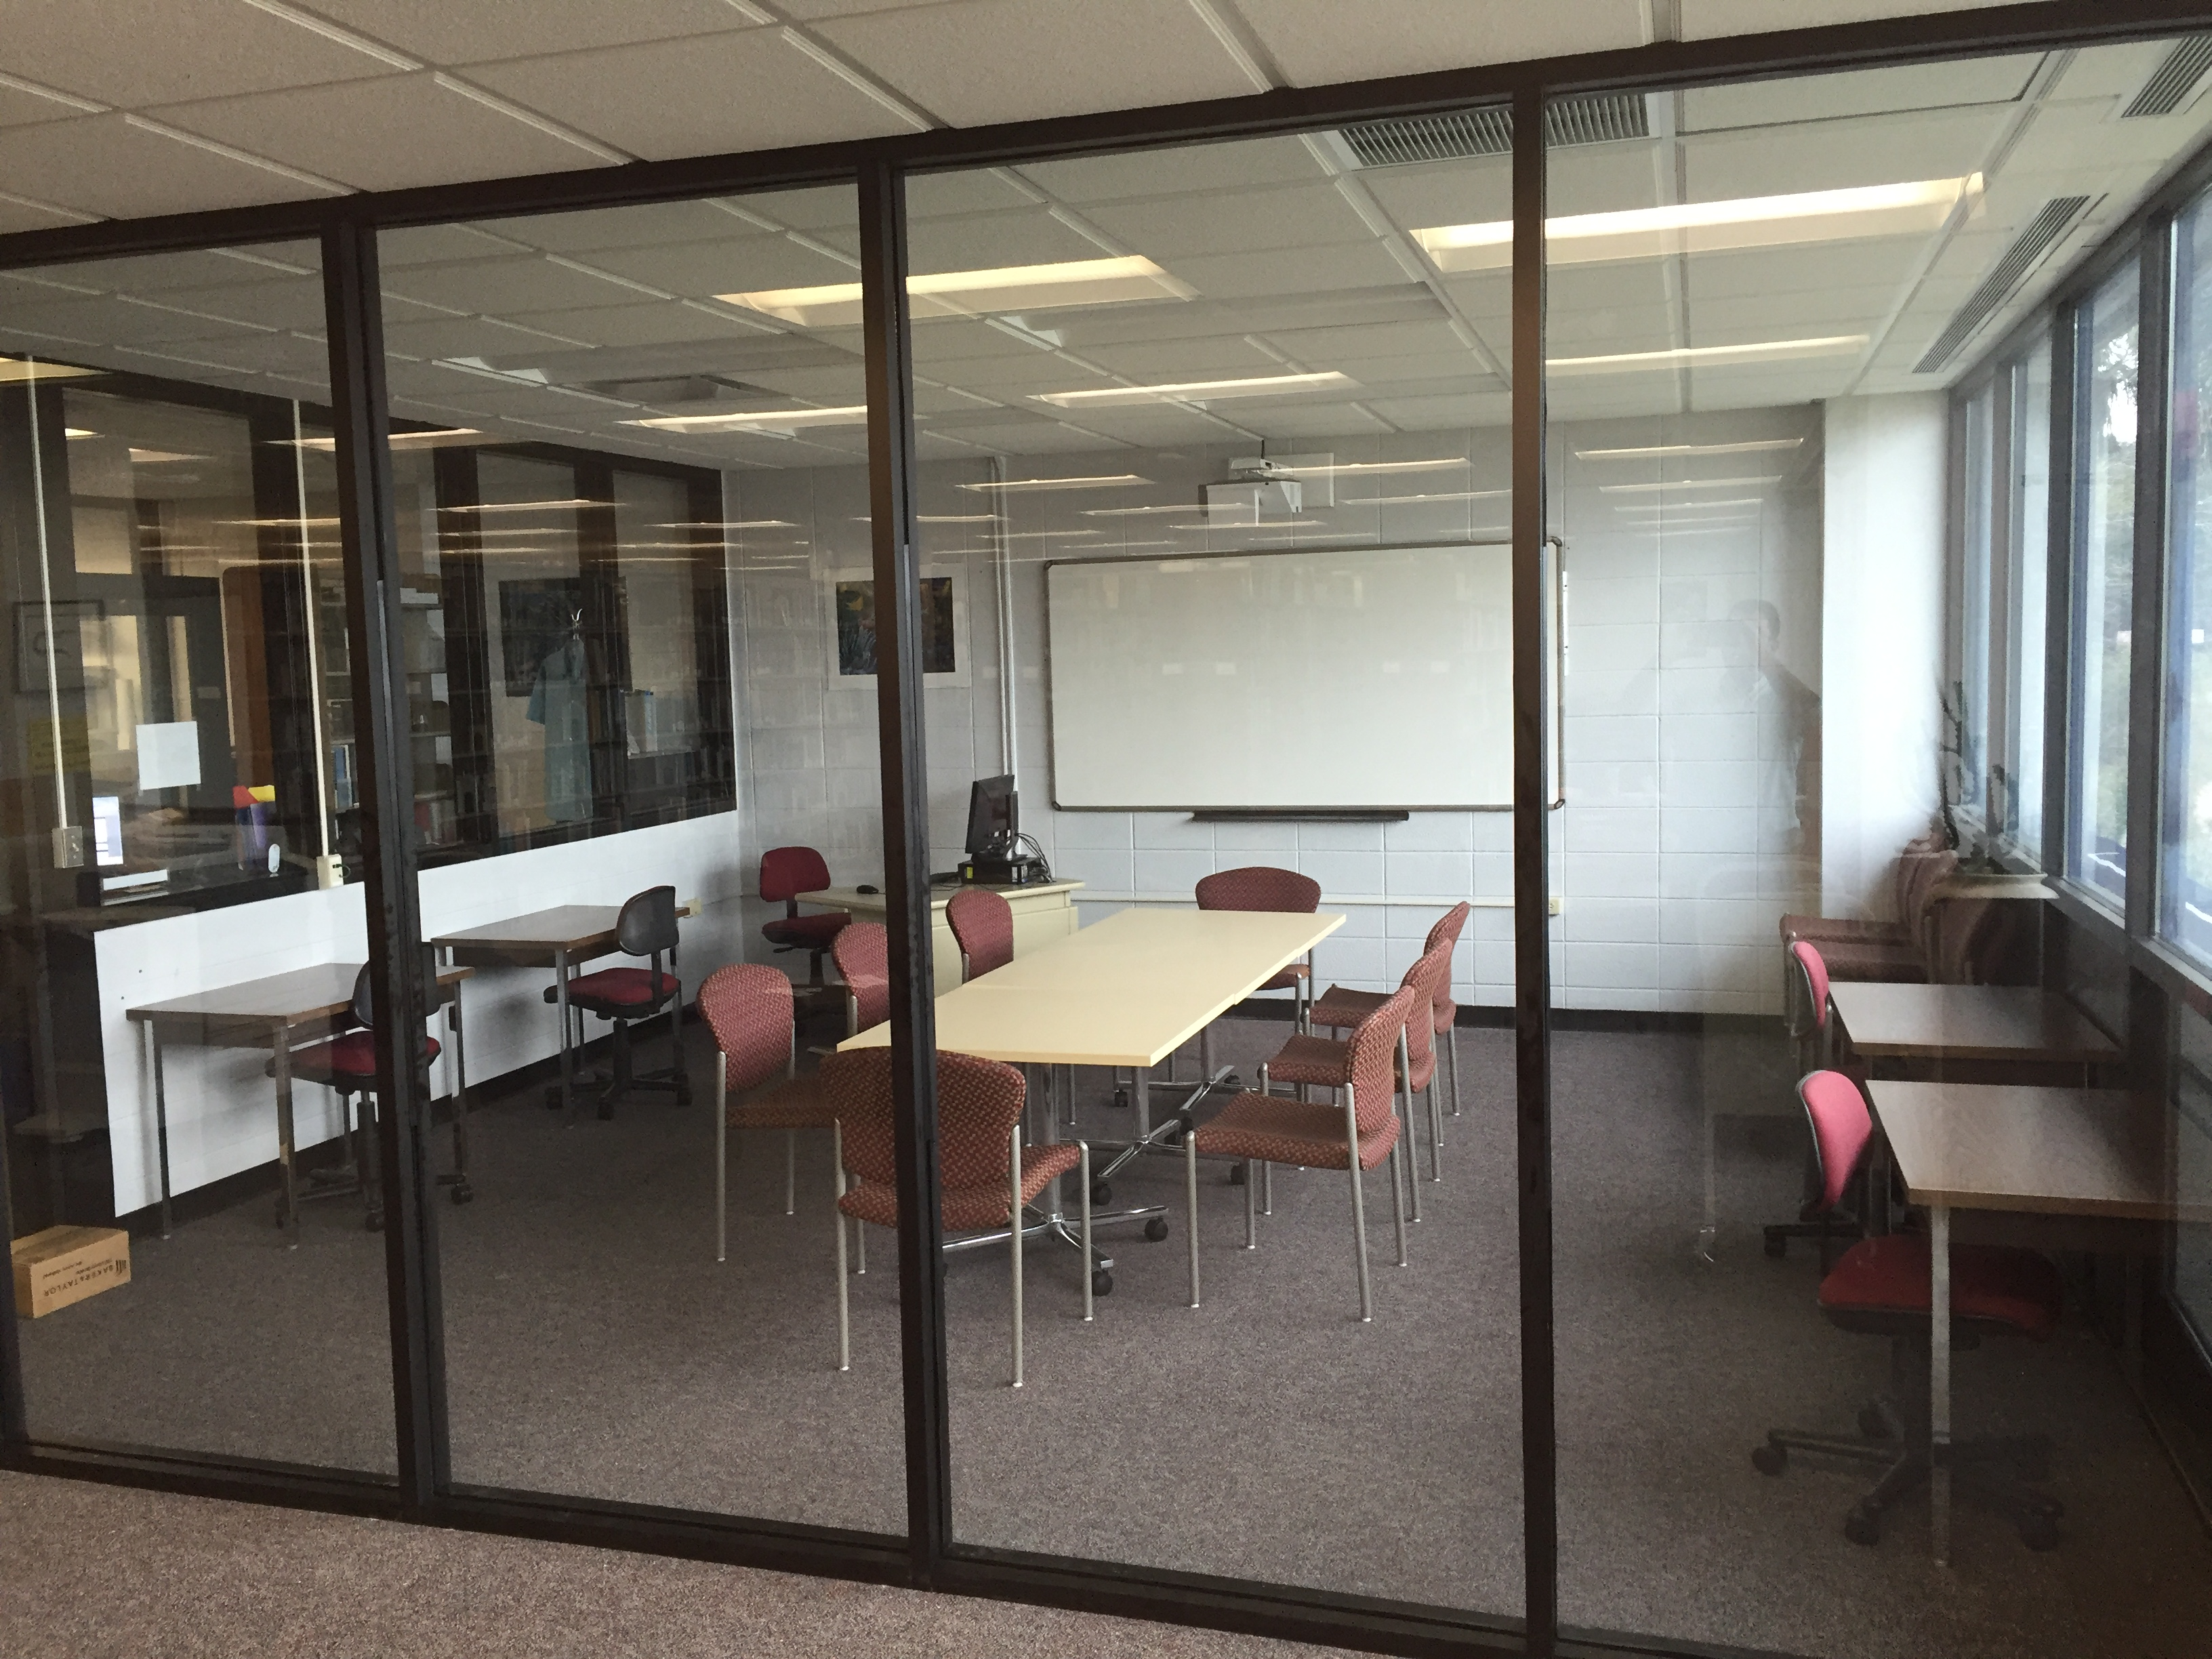 Marine Resources Library class/meeting room